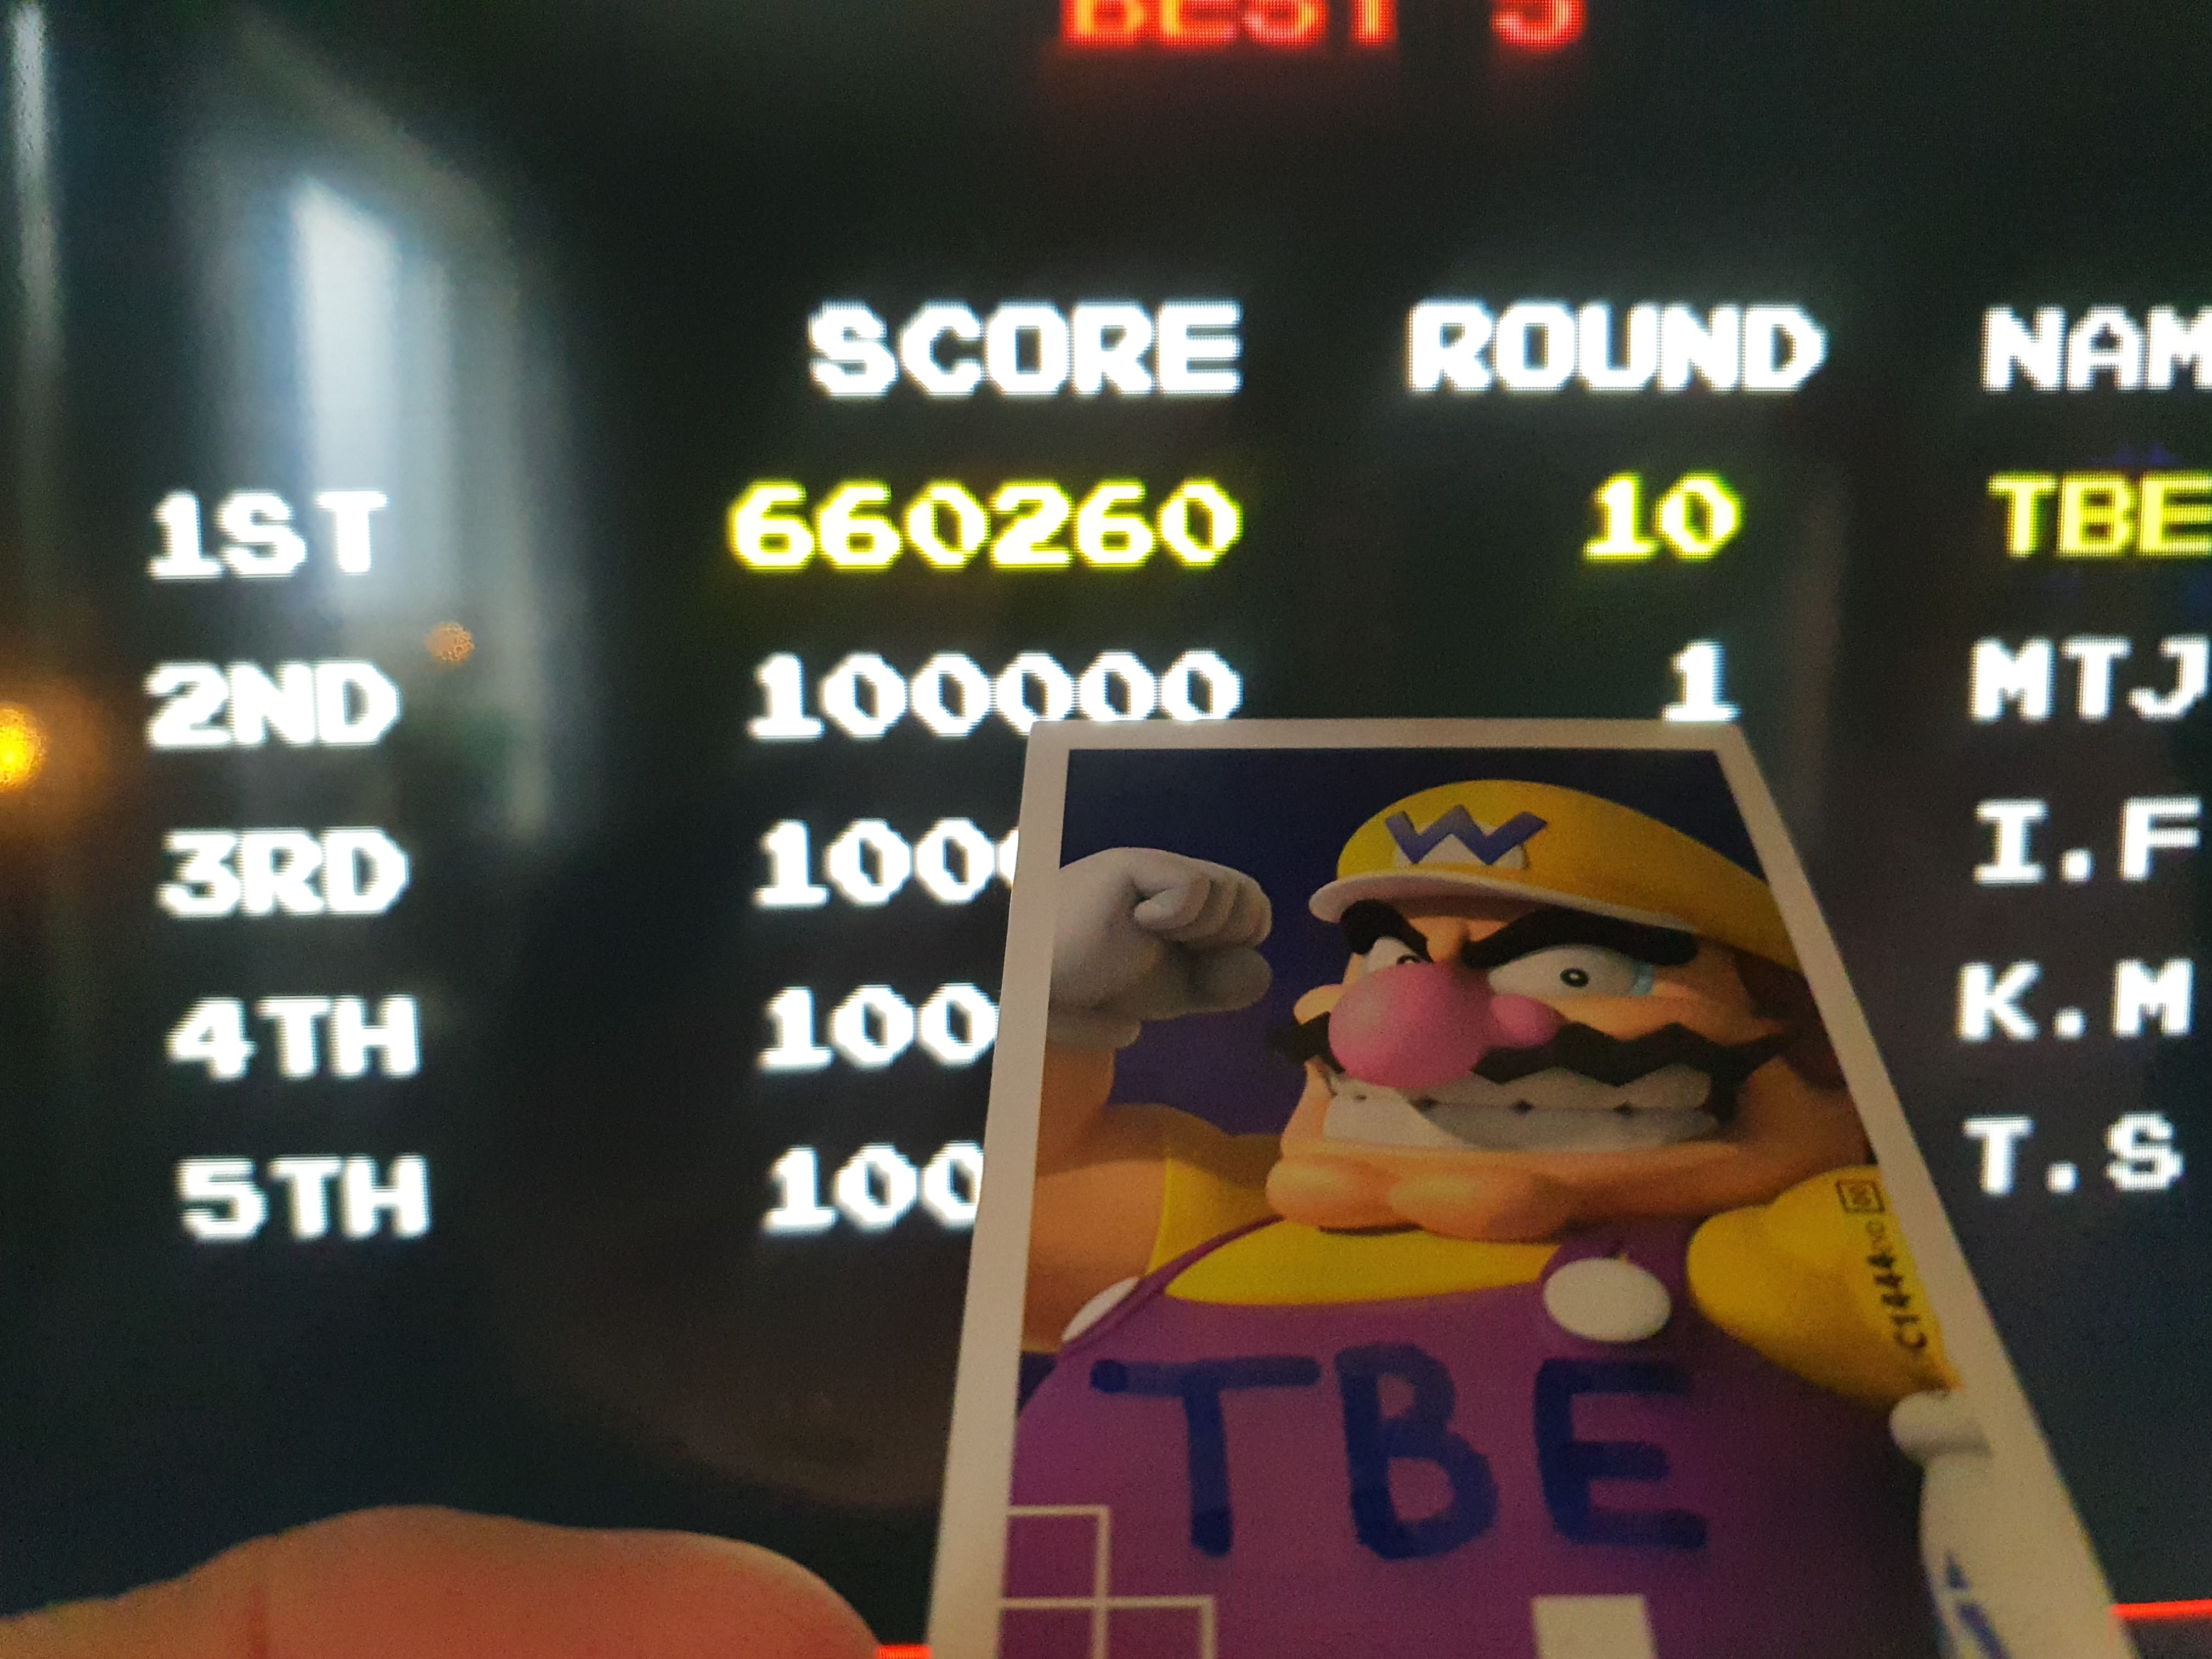 Sixx: Bubble Bobble Also Featuring Rainbow Islands: Rainbow Islands (Playstation 1 Emulated) 660,260 points on 2020-05-01 11:39:08